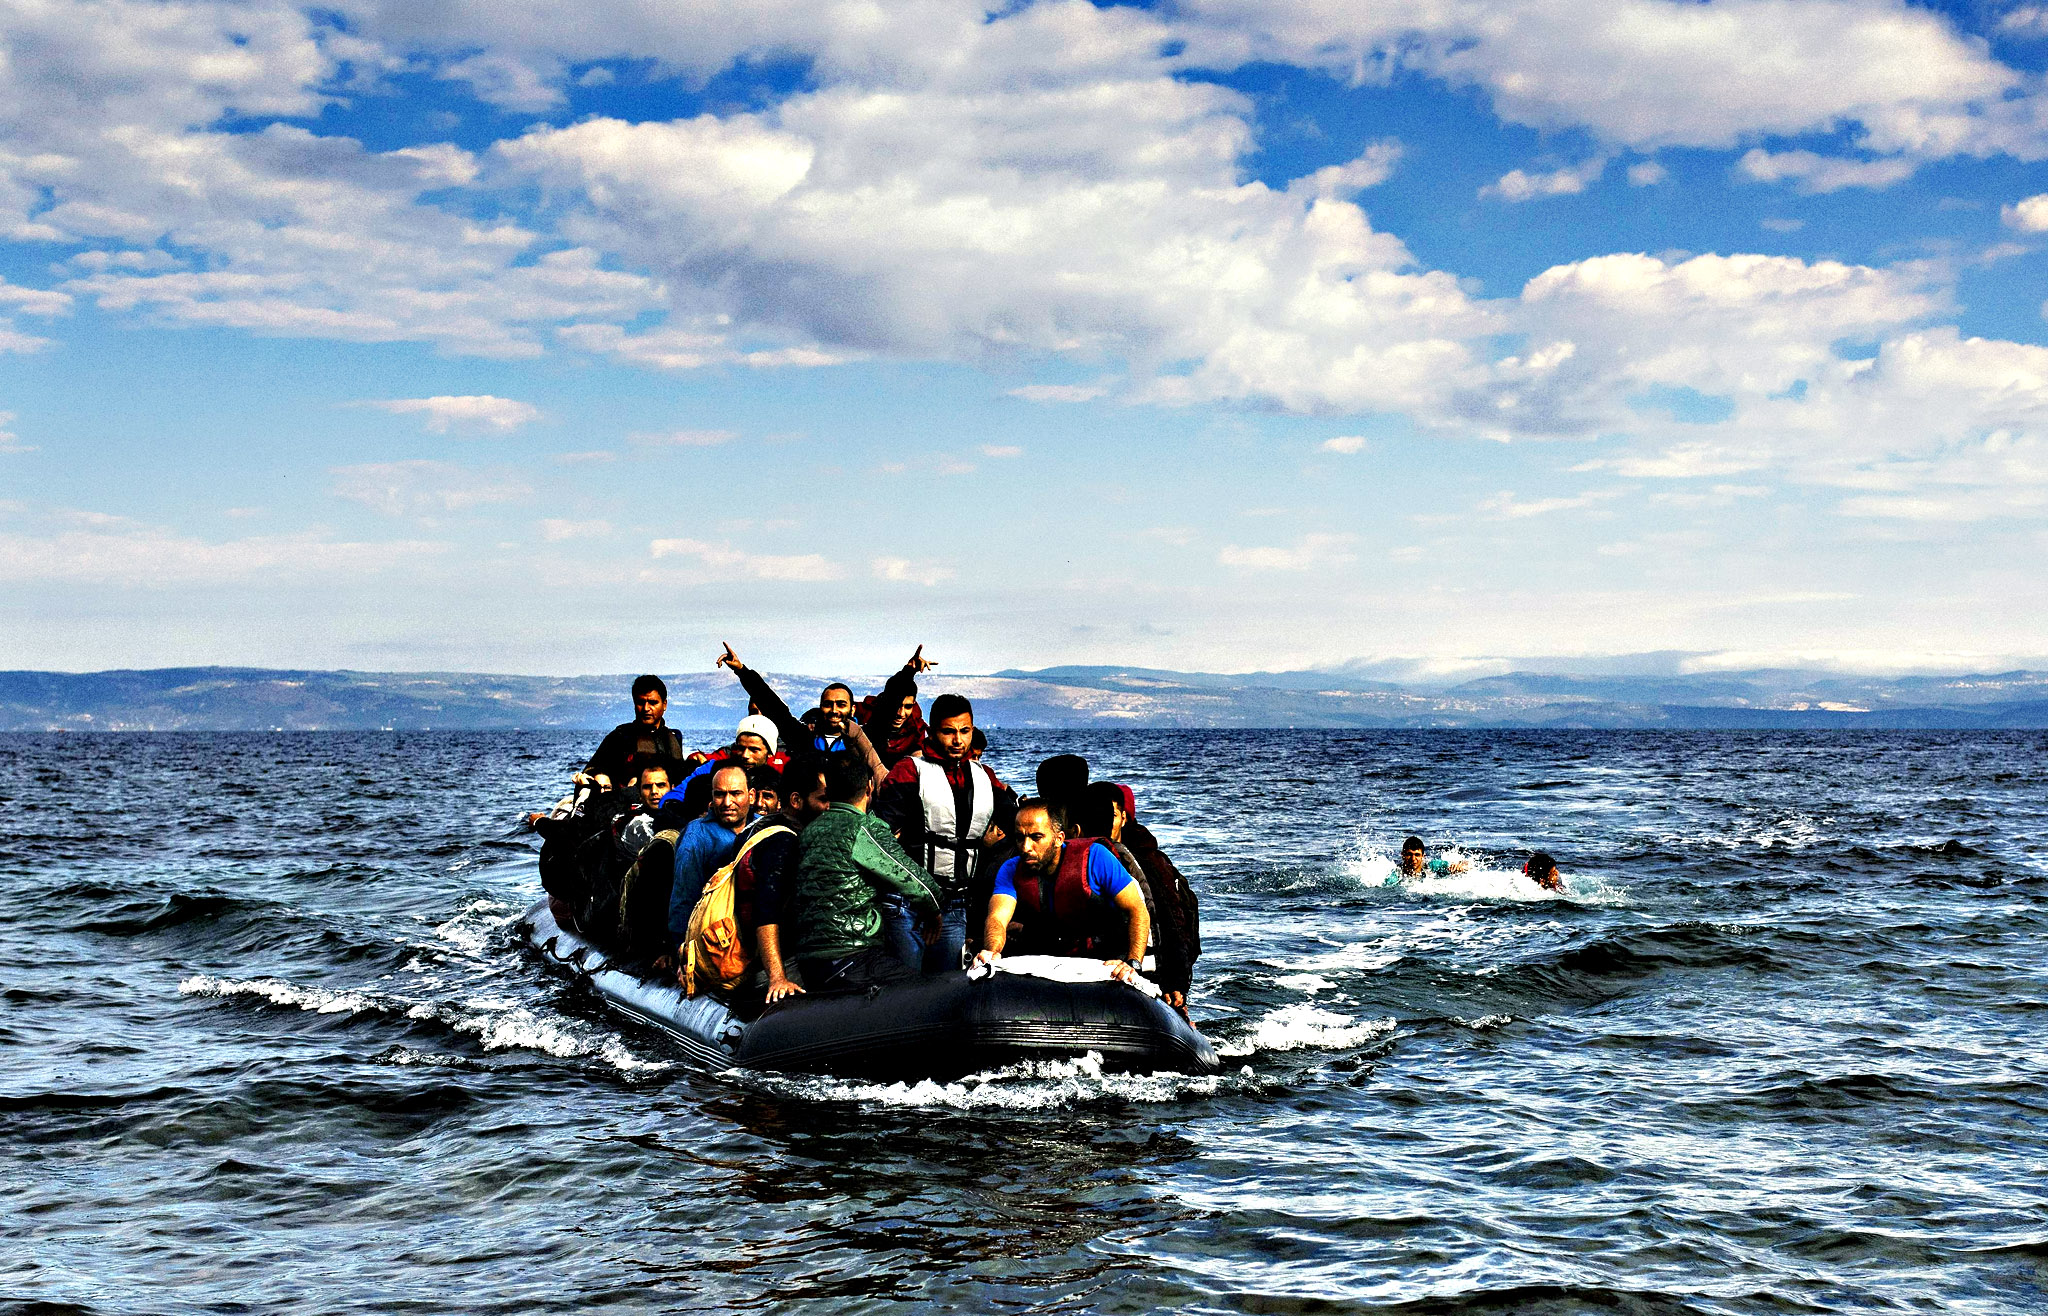 Refugees and migrants arrive on a rubber boat on the Greek island of Lesbos after crossing the Aegean sea from Turkey on October 13, 2015. Greece pledged On October 10, 2015 during talks with its EU partners to open its first so-called hotspot reception centre on the island of Lesbos within 10 days under EU efforts to better deal with the massive influx of migrants.